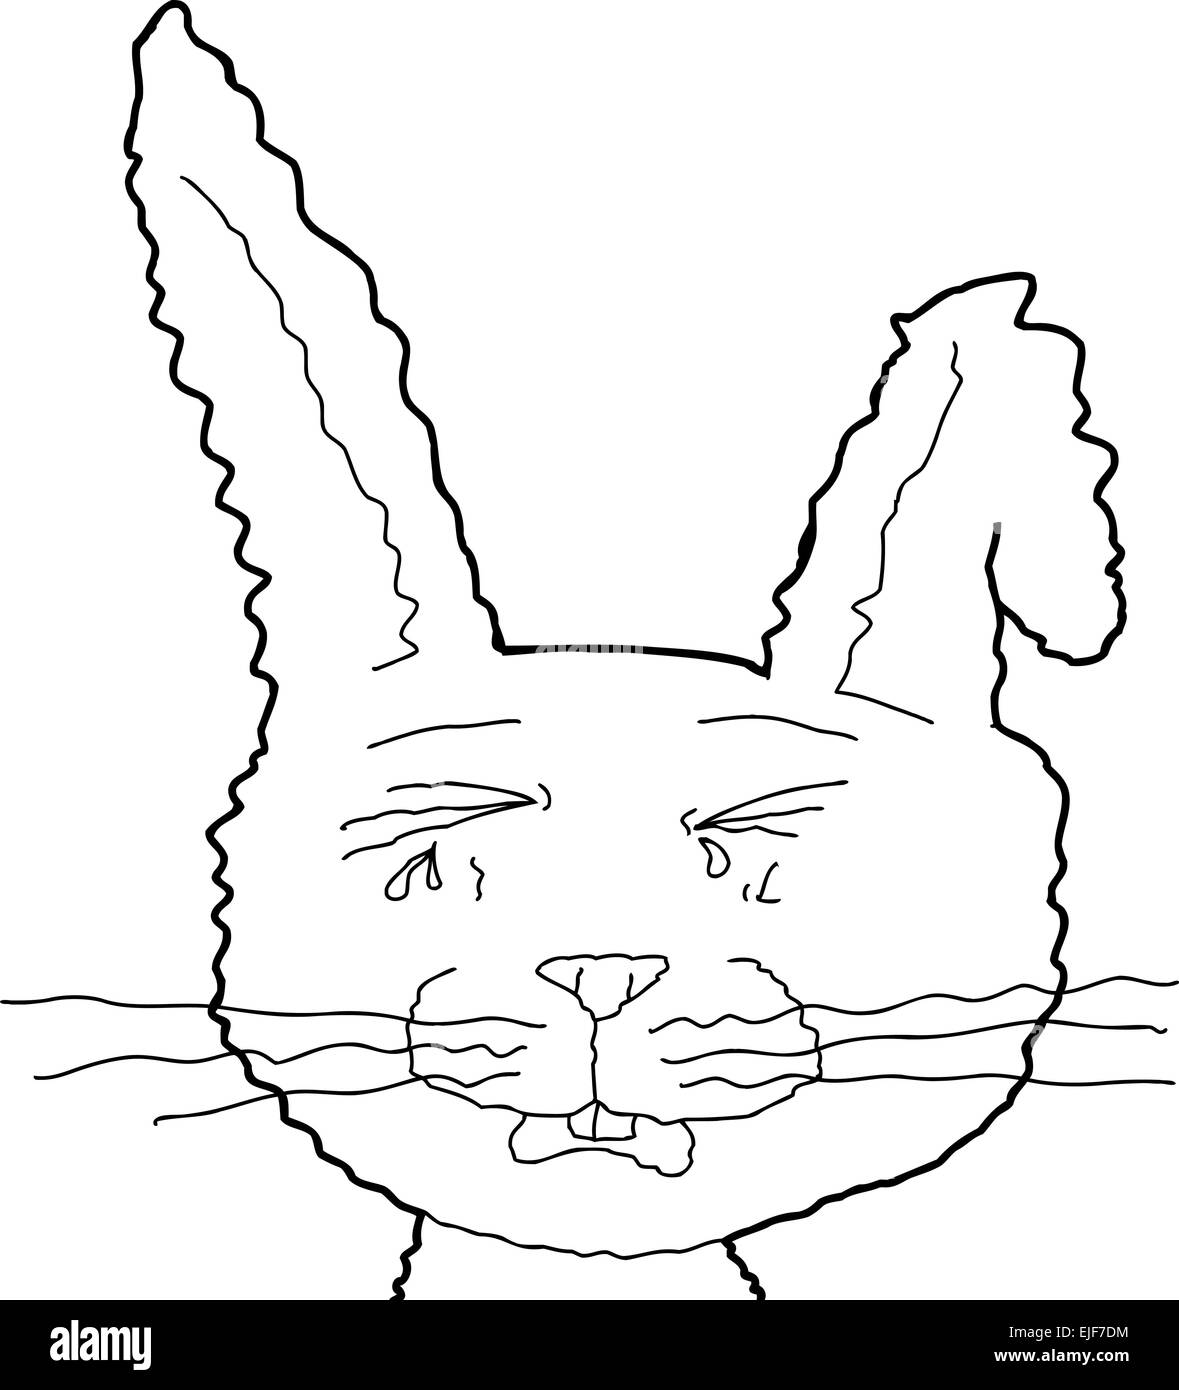 Outlined crying rabbit cartoon with bent ear - Stock Image